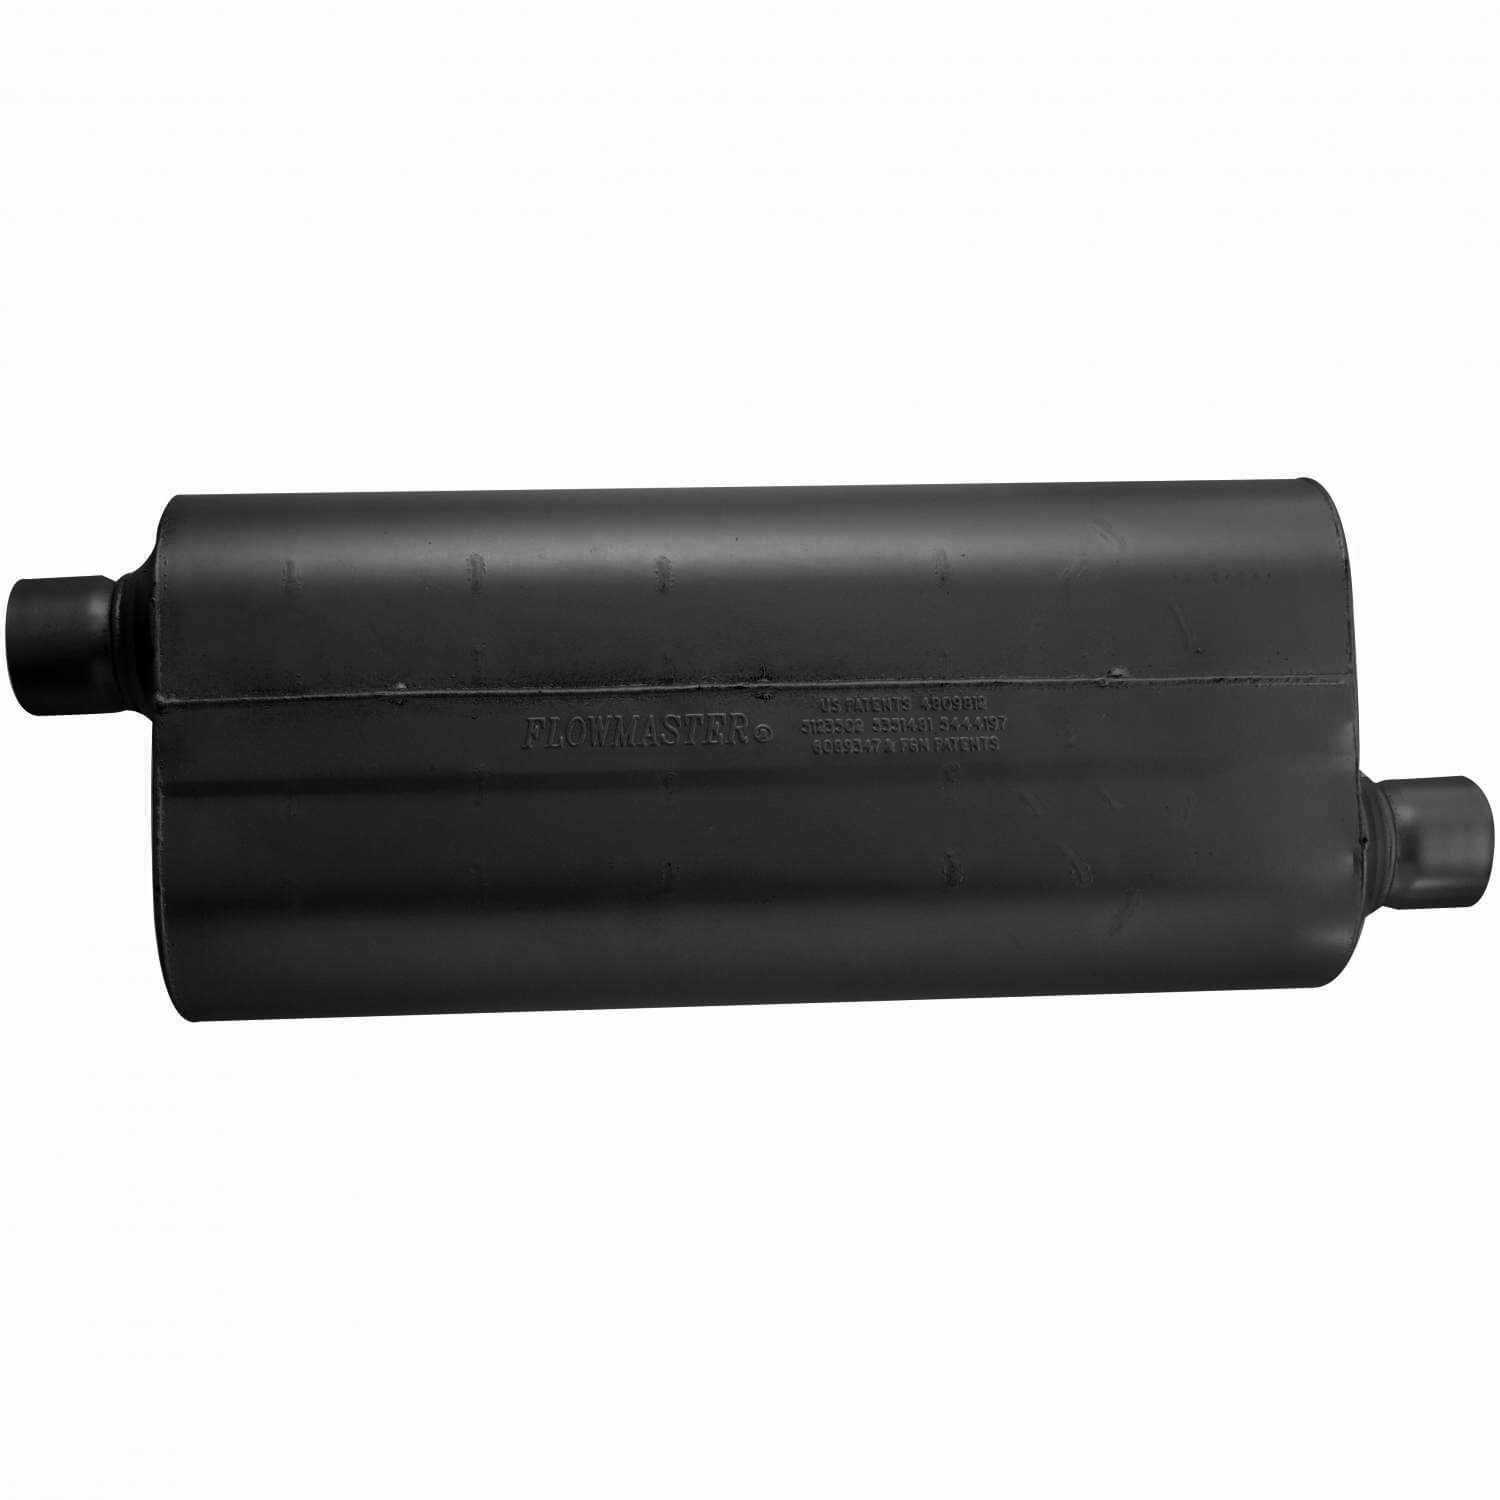 52573 Flowmaster 70 Series™ Big Block II Muffler